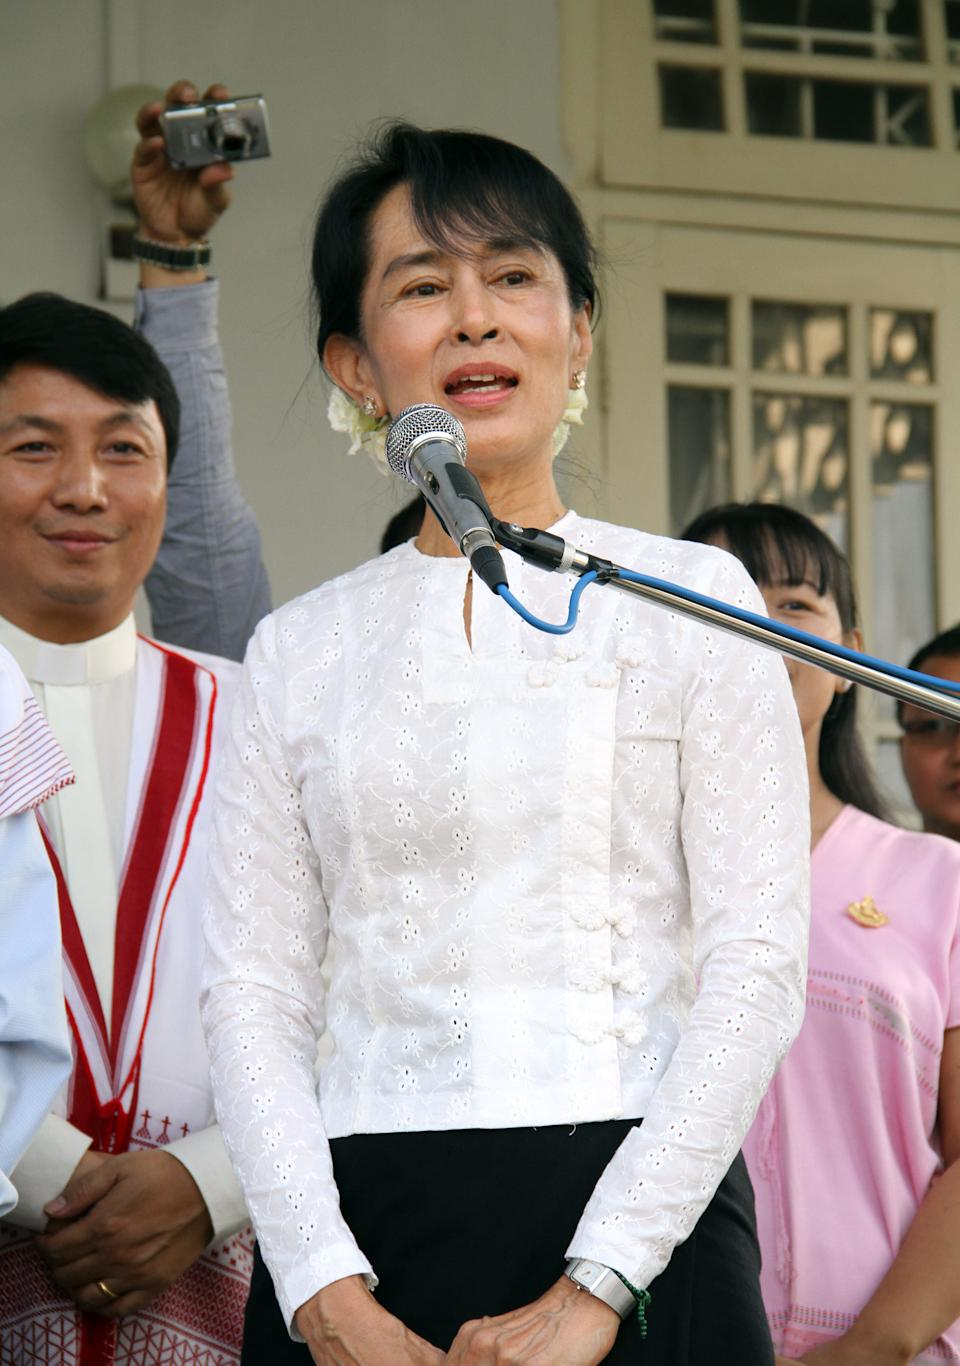 Myanmar's pro-democracy leader Aung San Suu Kyi talks to media after meeting with Saw Htay Maung, chairman of the KNU/KNLA, at her house on Friday, Feb. 10, 2012. (AP Photo/Khin Maung Win)